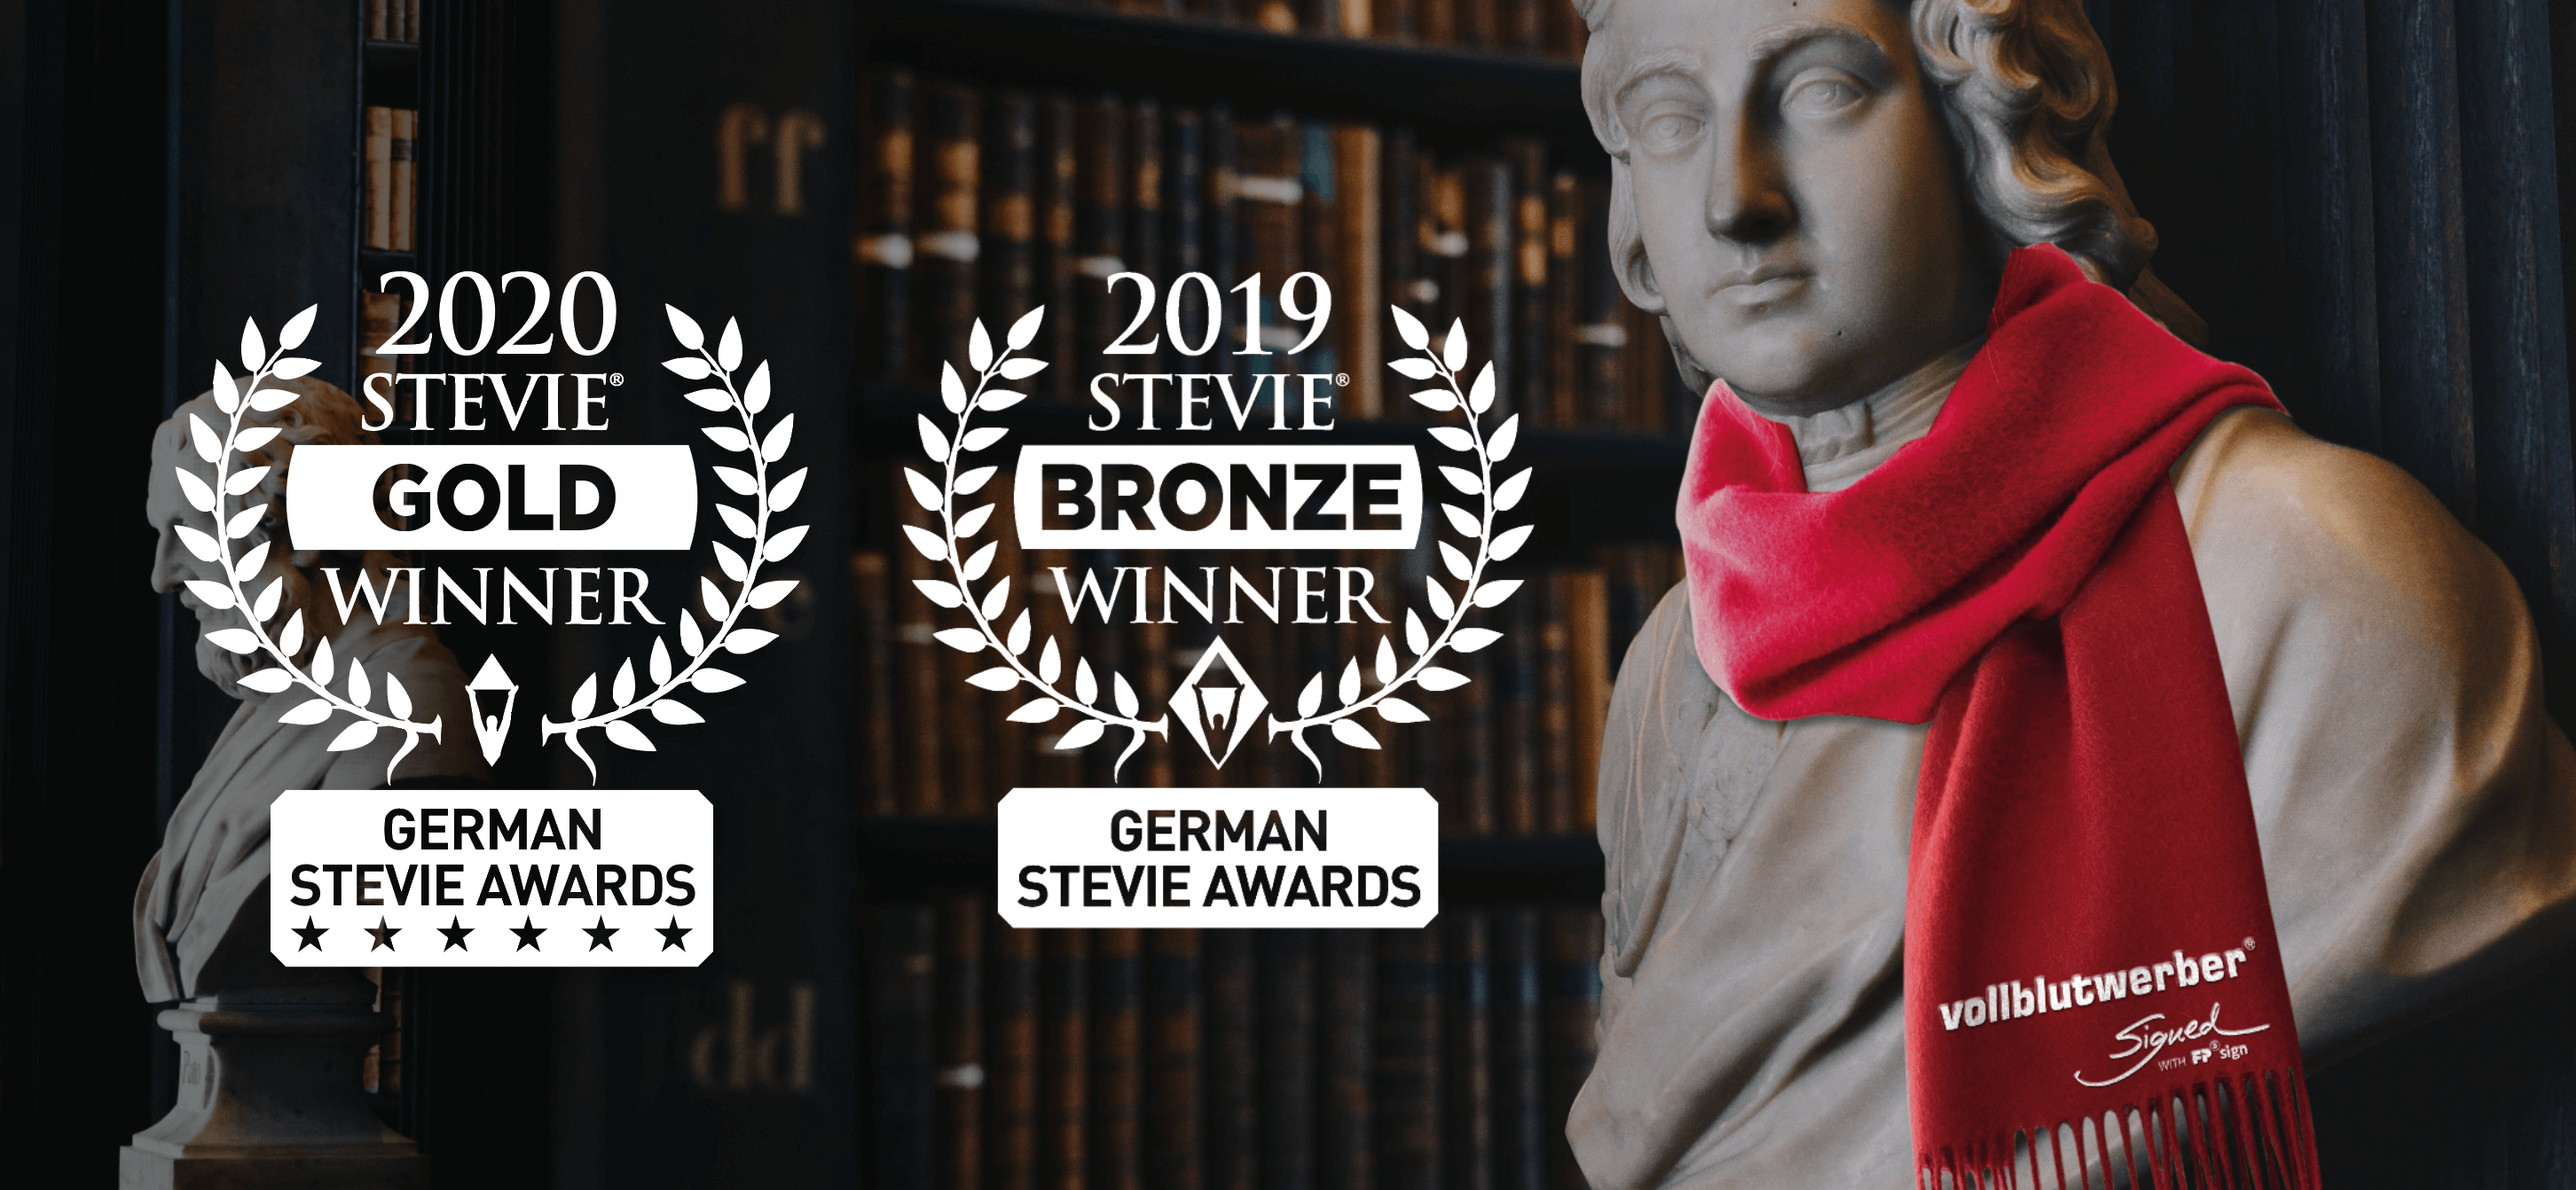 VOLLBLUTWERBER gewinnen STEVIE® AWARDS